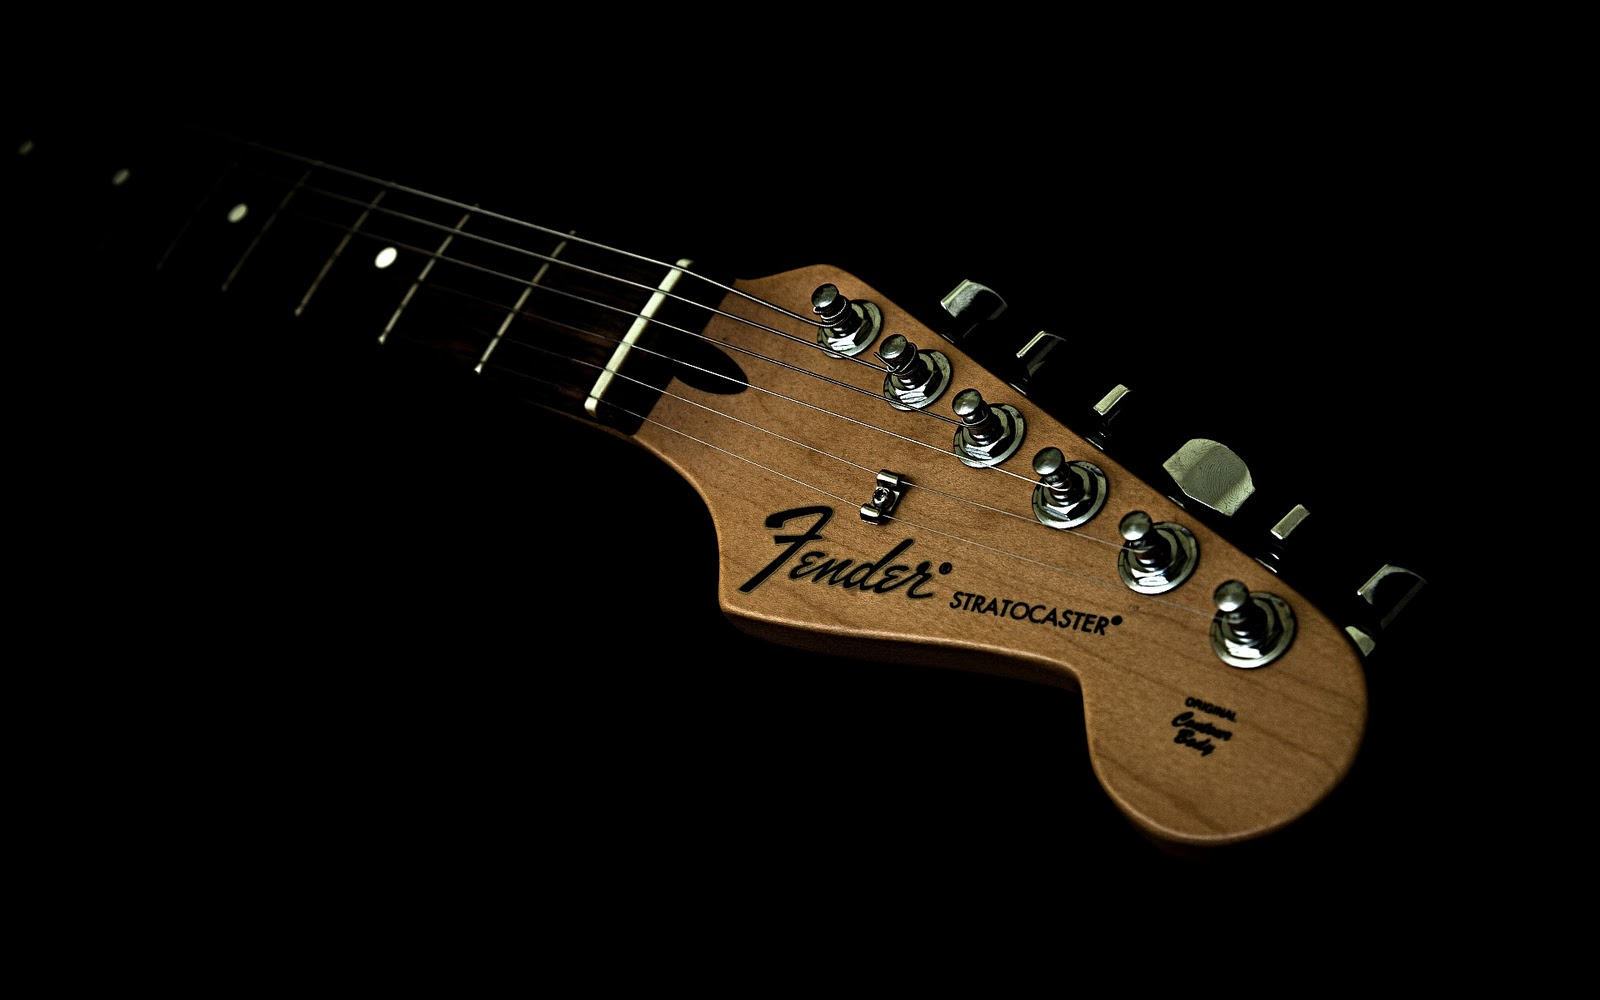 Electric Guitar Wallpaper Hd Fender guitar 1600x1000